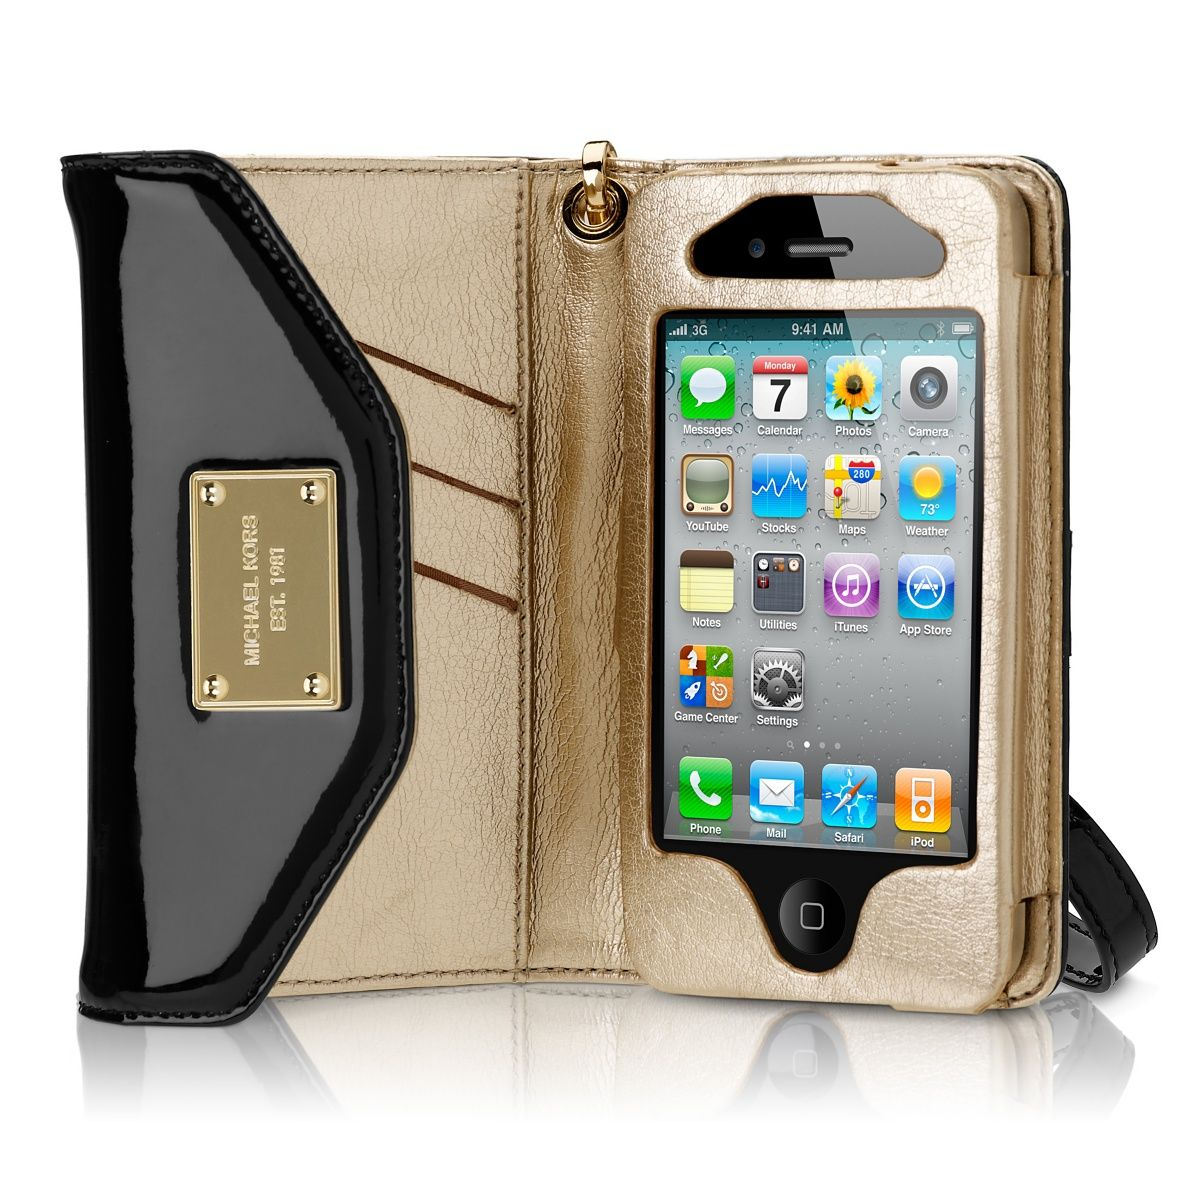 Michael Kors Wallet Clutch For Iphone Apple Store U S Clutch Wallet Michael Kors Wallet Iphone Wristlet